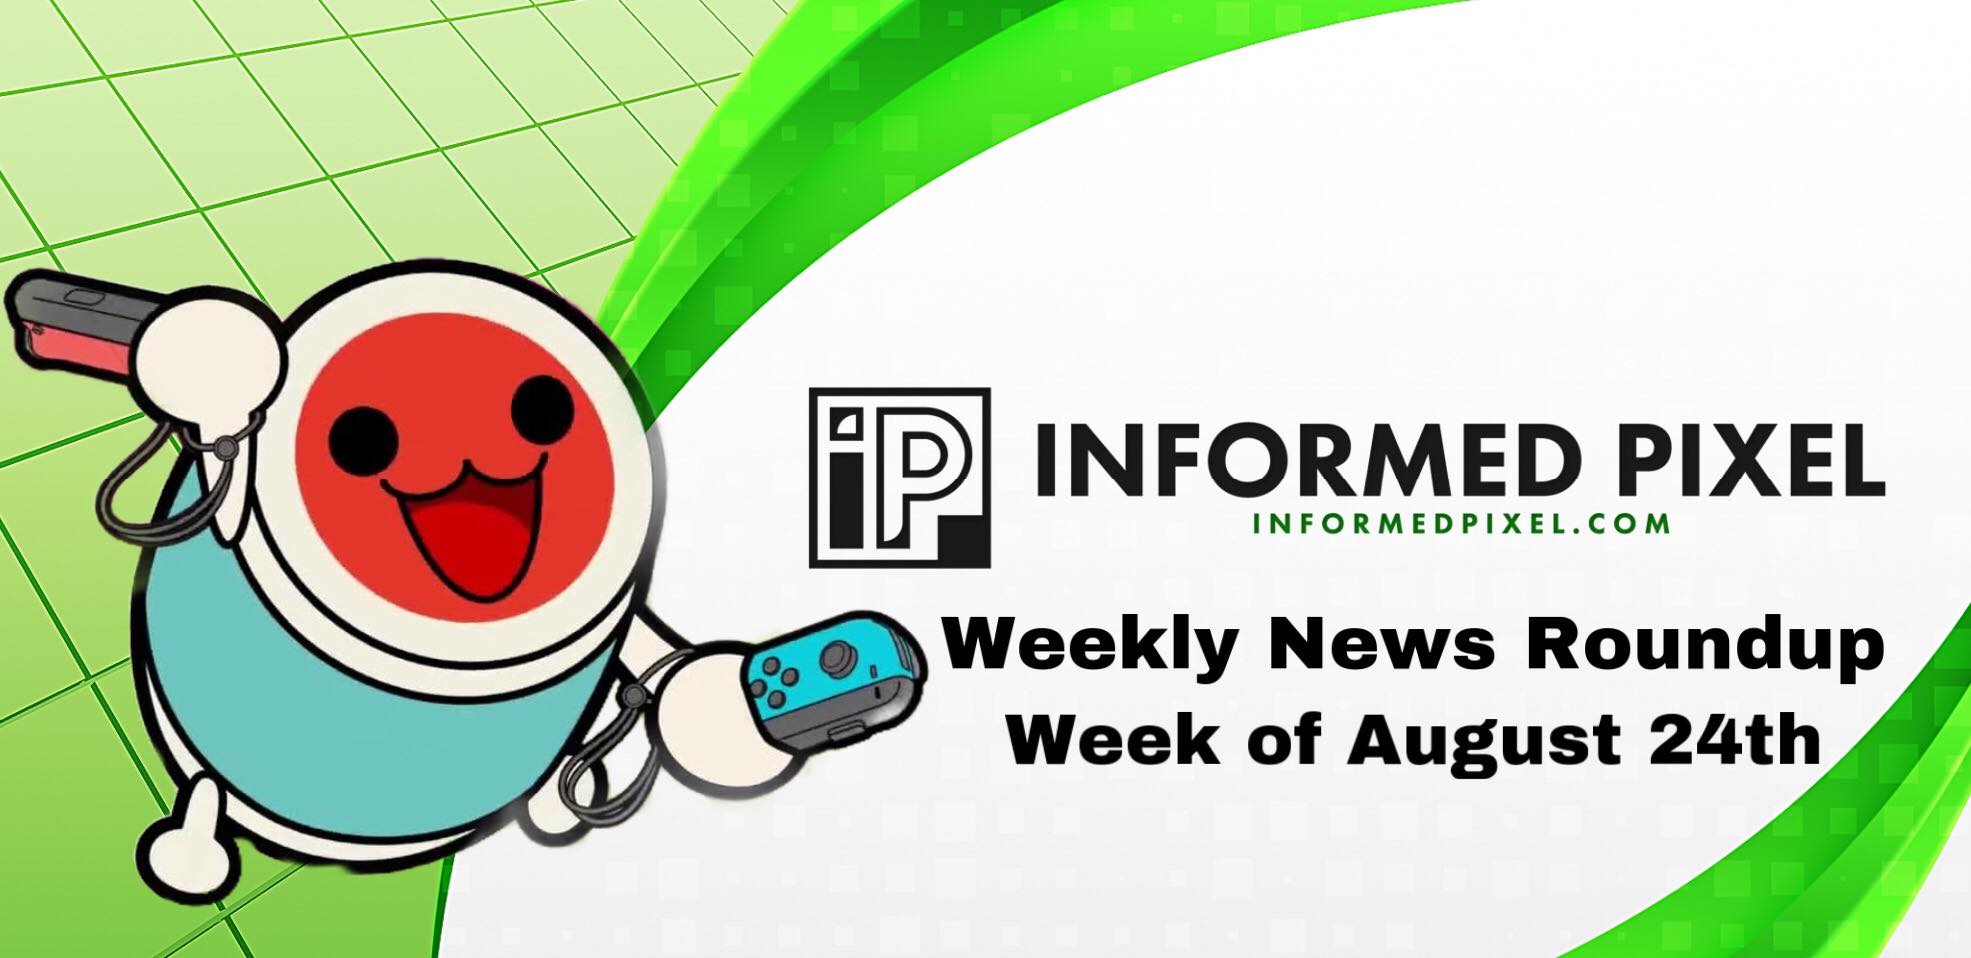 Weekly News Roundup – Week of August 24th